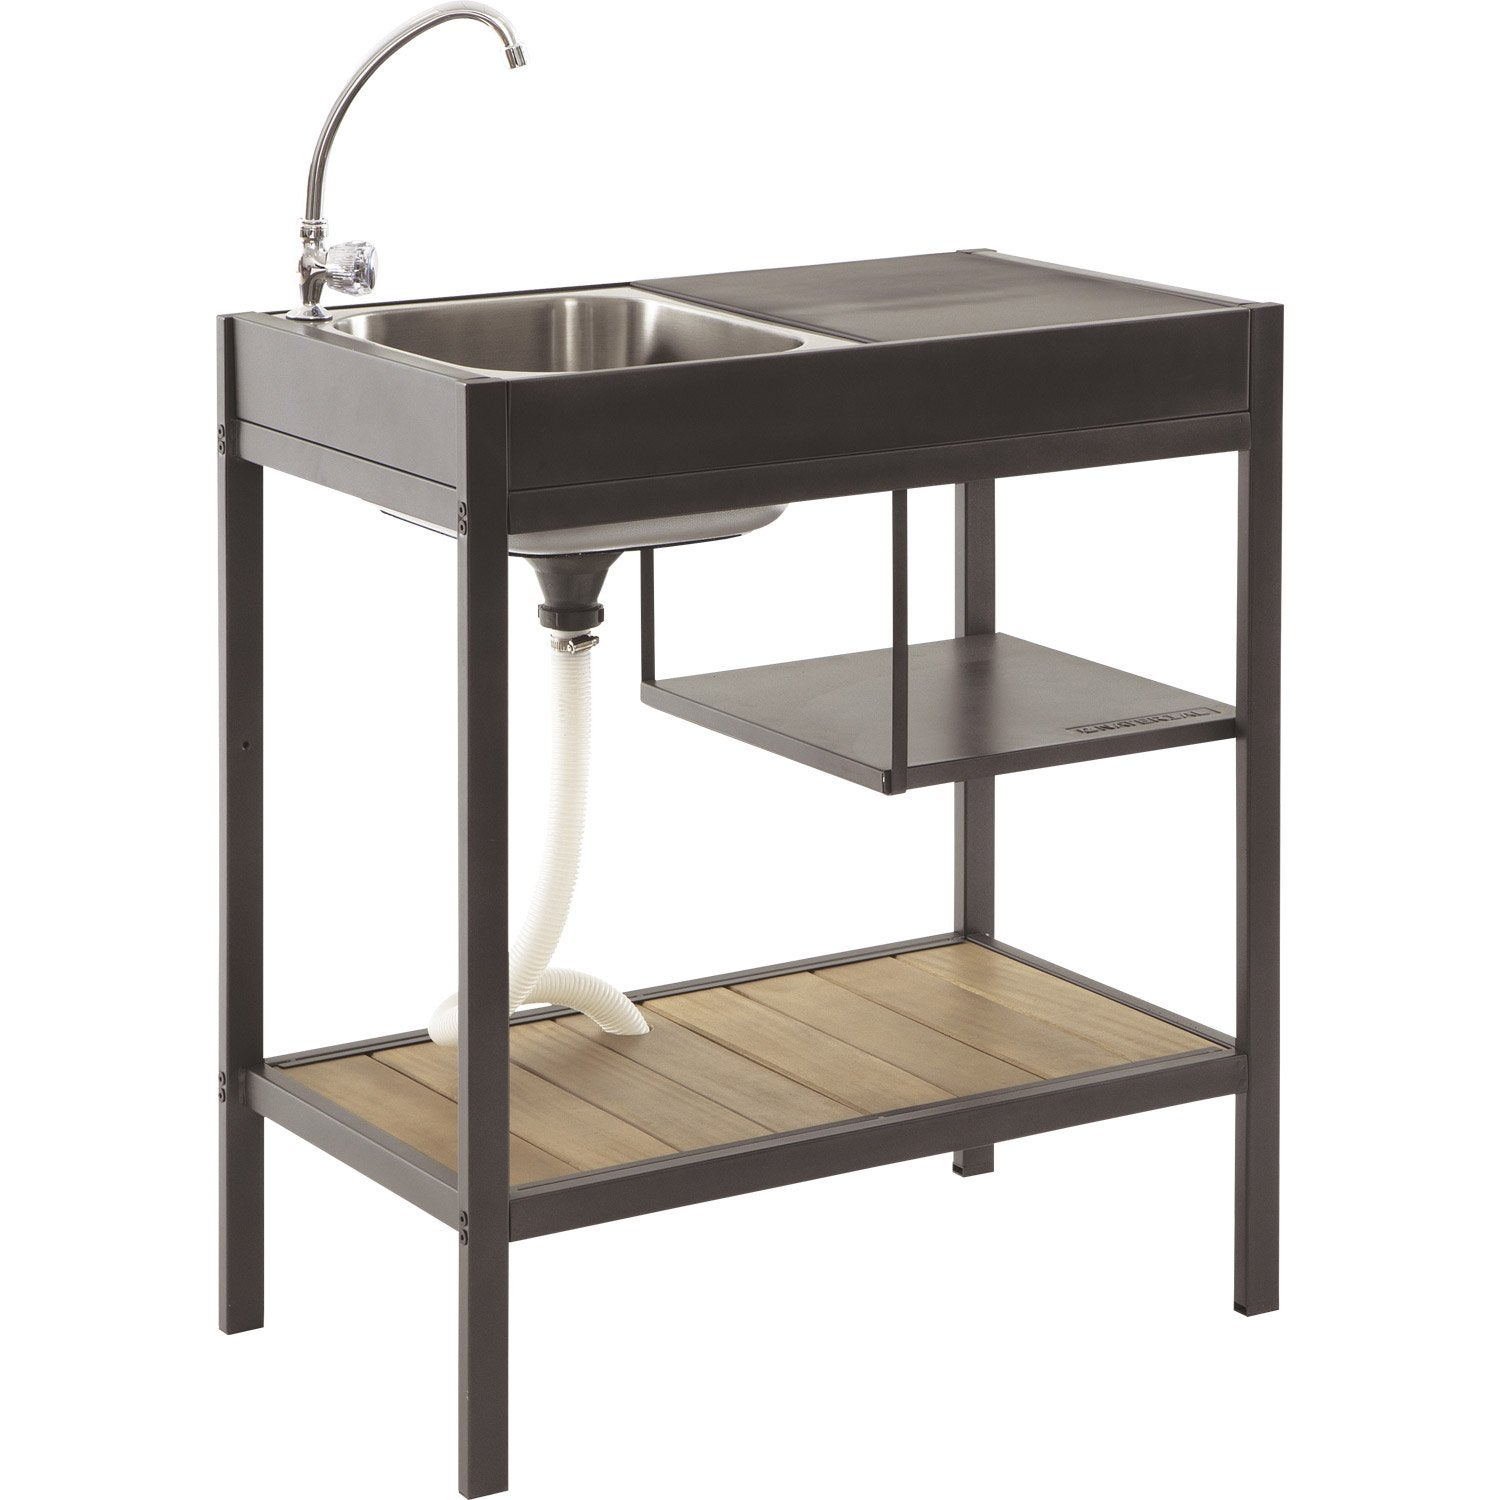 Point d 39 eau naterial cuisine module resort leroy merlin for Balancines para jardin leroy merlin